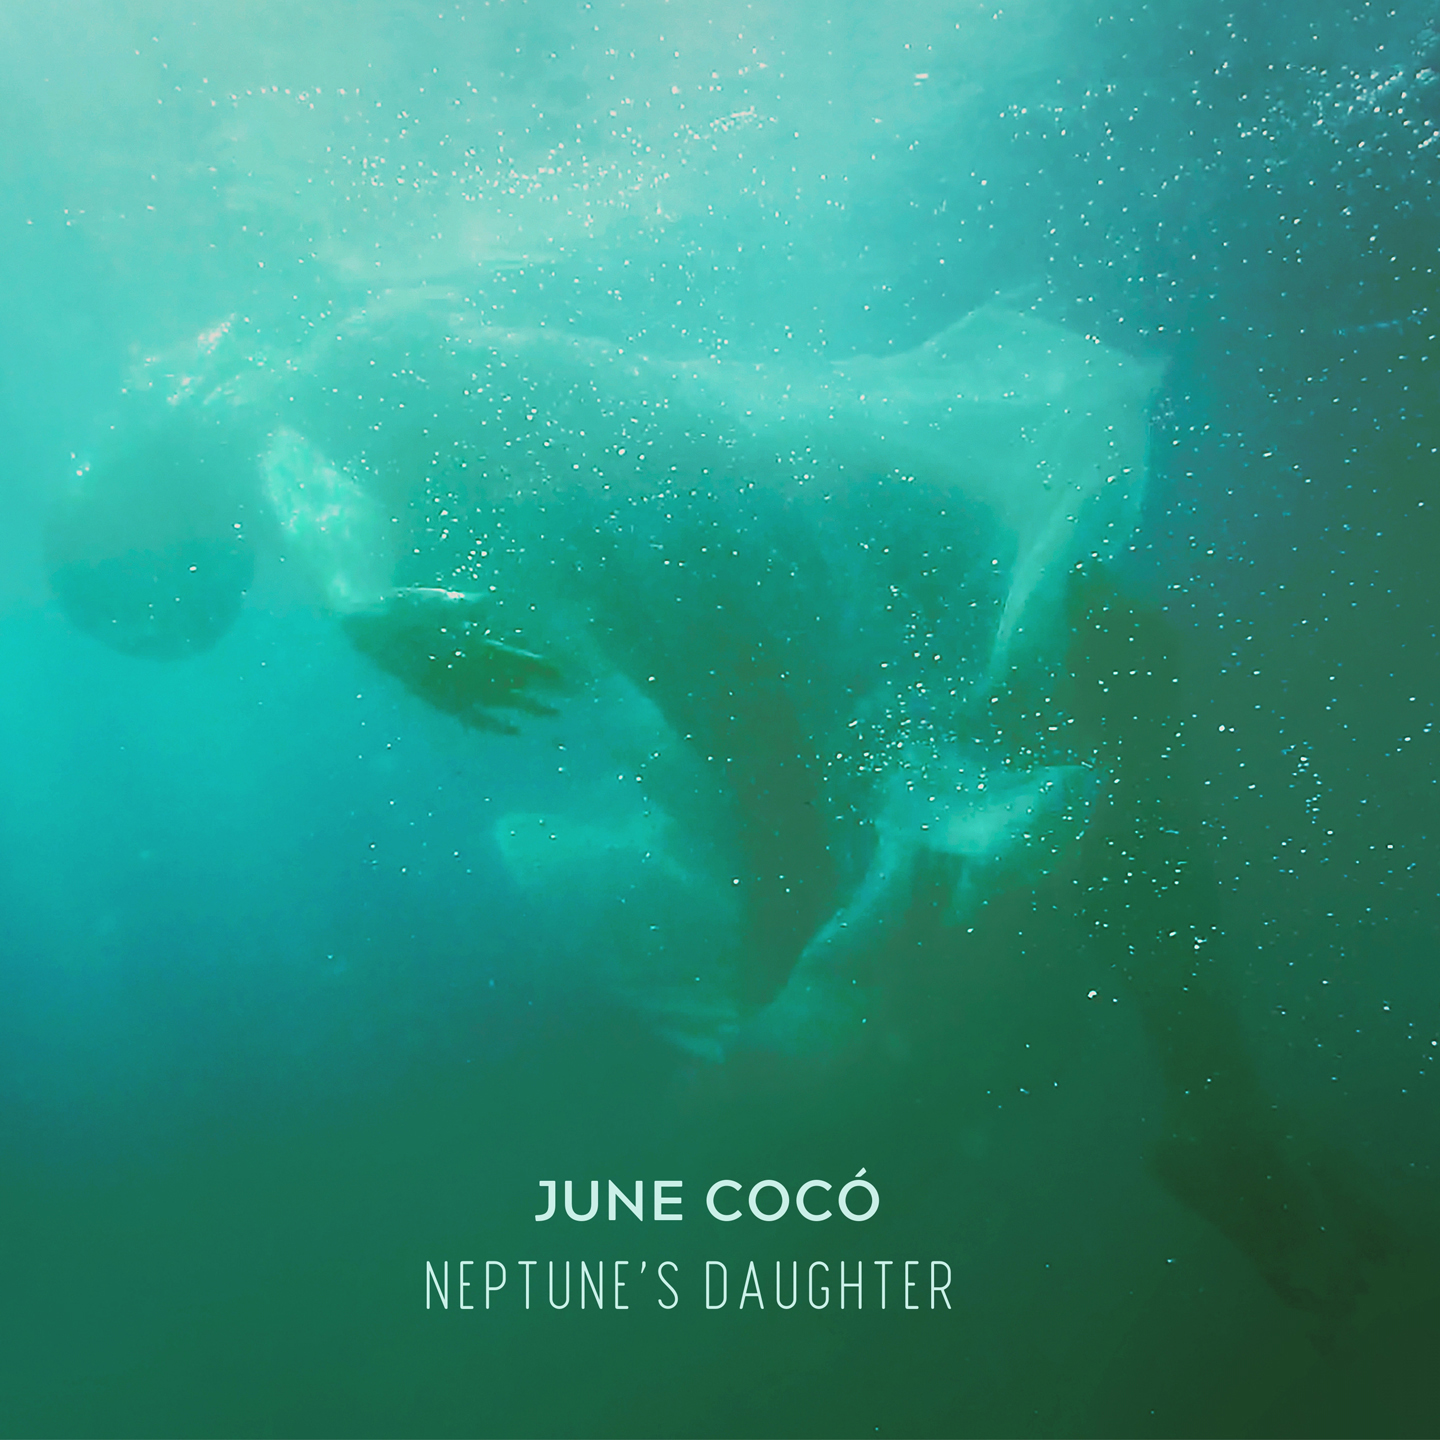 June Coco - Neptune's Daughter